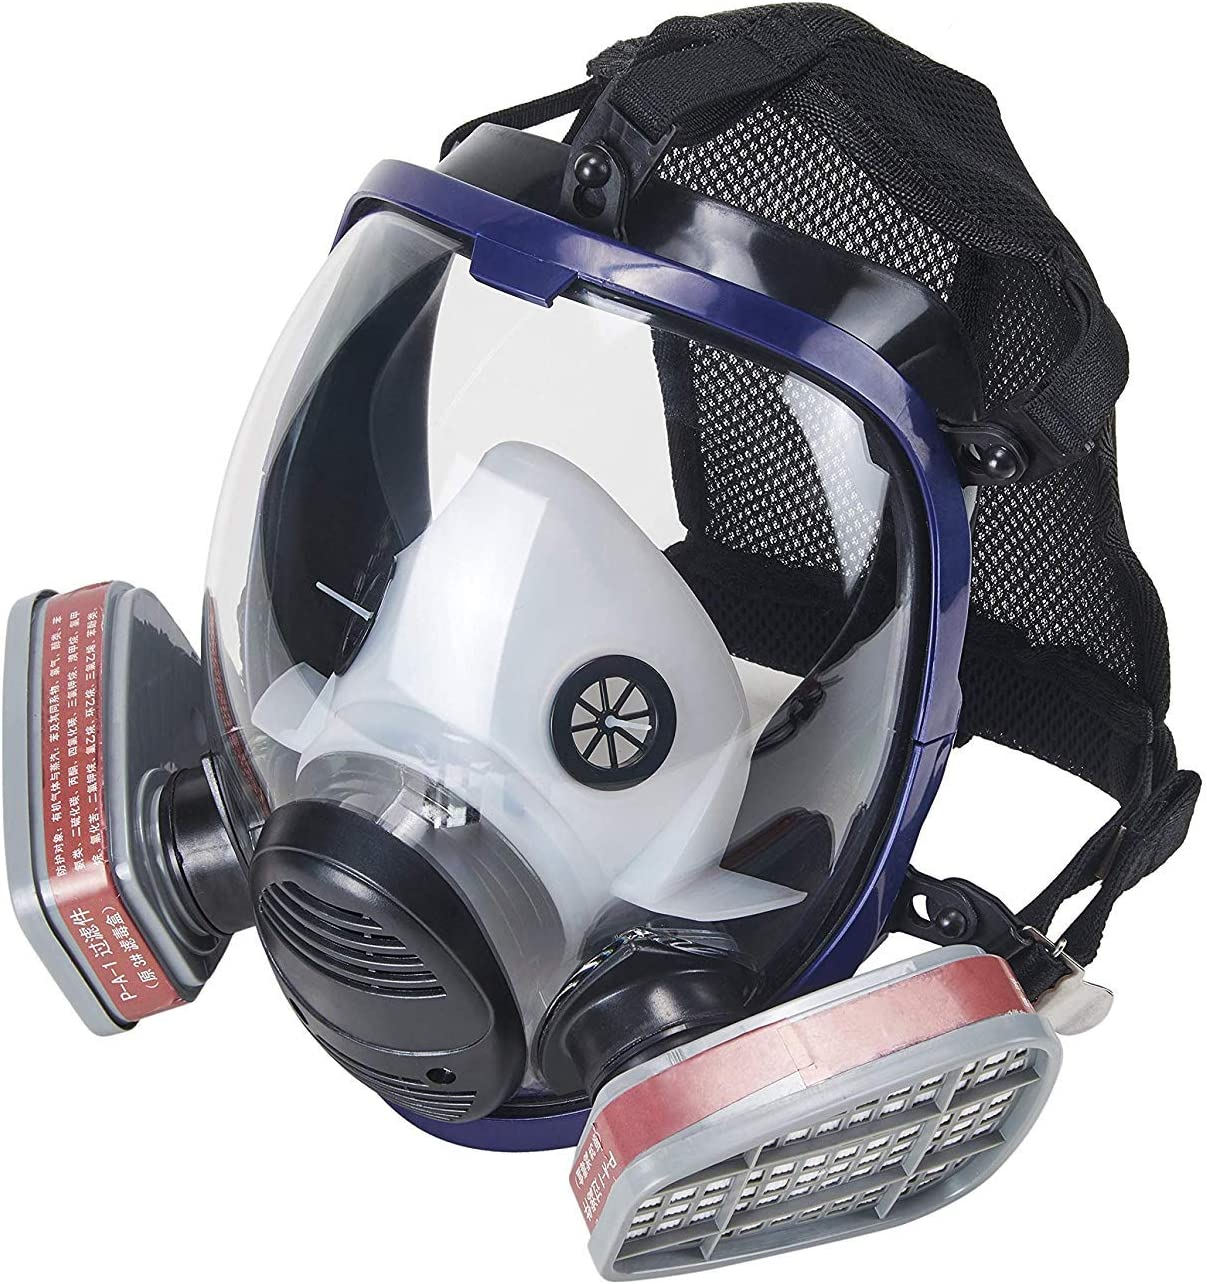 Future Shield Full Face Safety Respirator Mask With Filters En Safety Certified 600 Full Face Respirator Mask With Filter Cartridge Amazon Co Uk Diy Tools